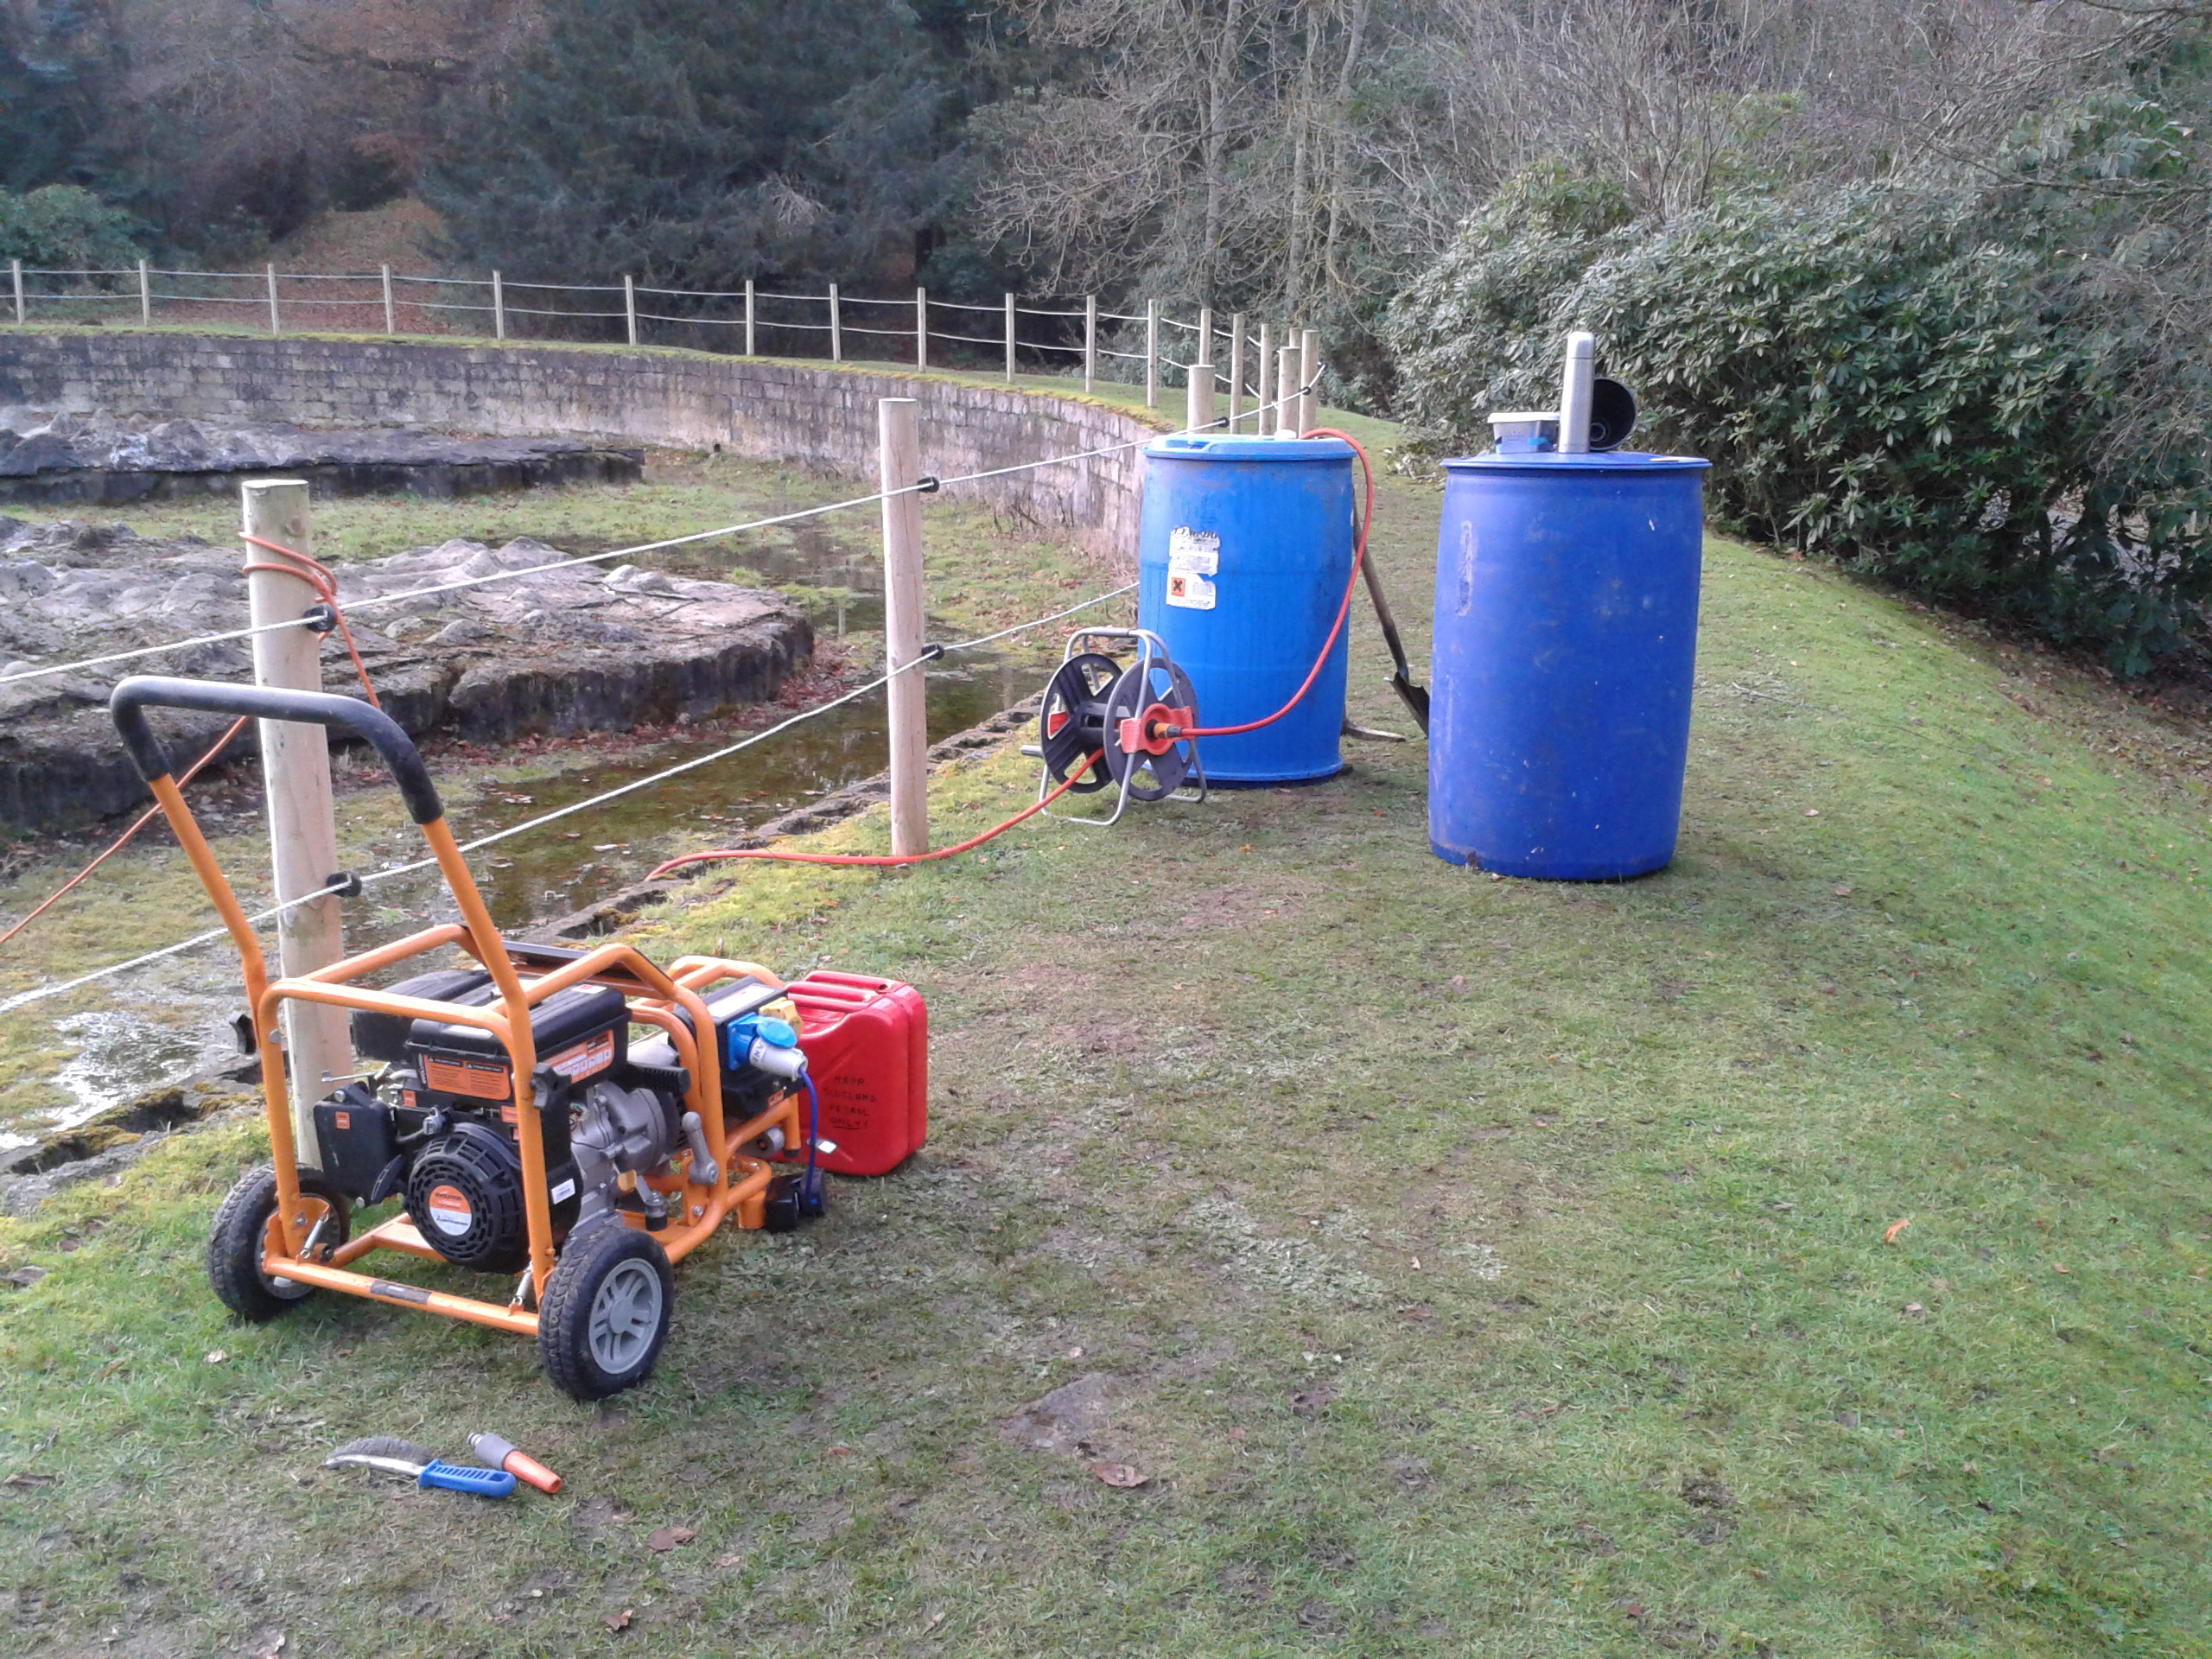 Shows a generator used to pump water for pressure blasting moss on the surface of The Great Polish Map of Scotland